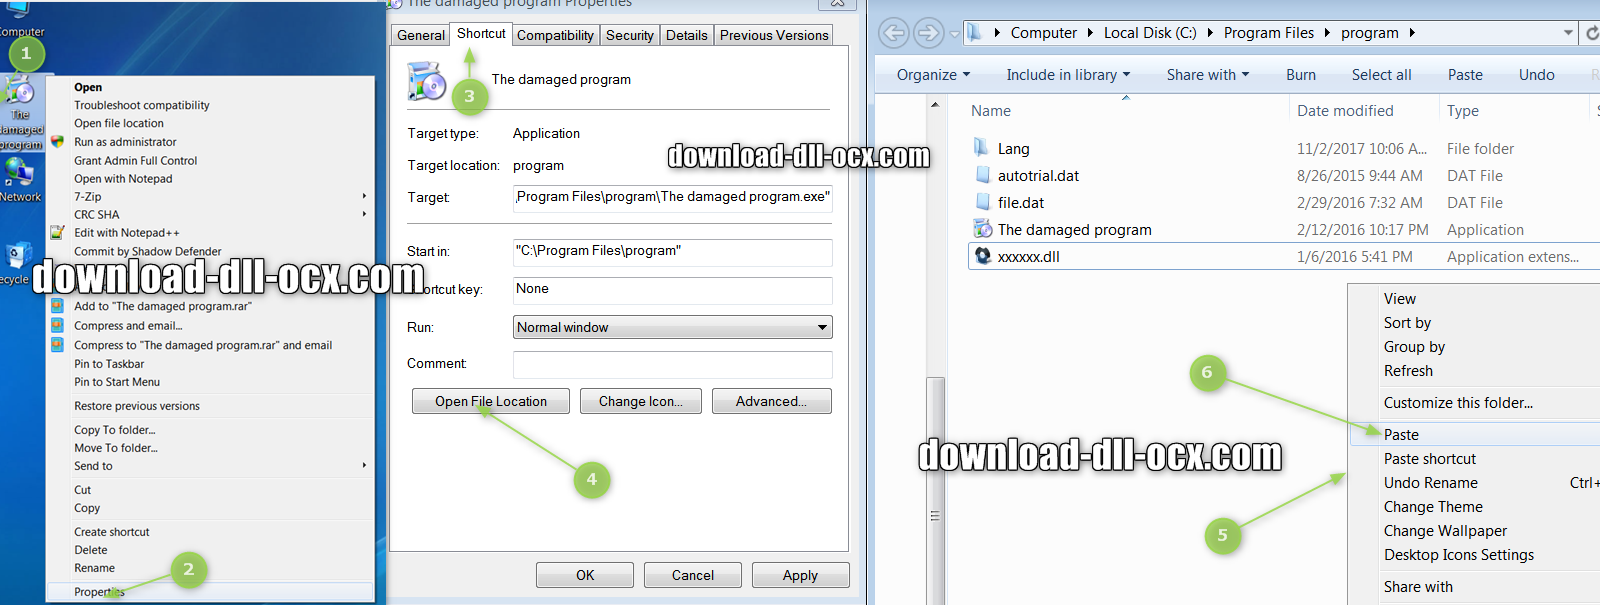 how to install Libpixbufloader-tiff.dll file? for fix missing